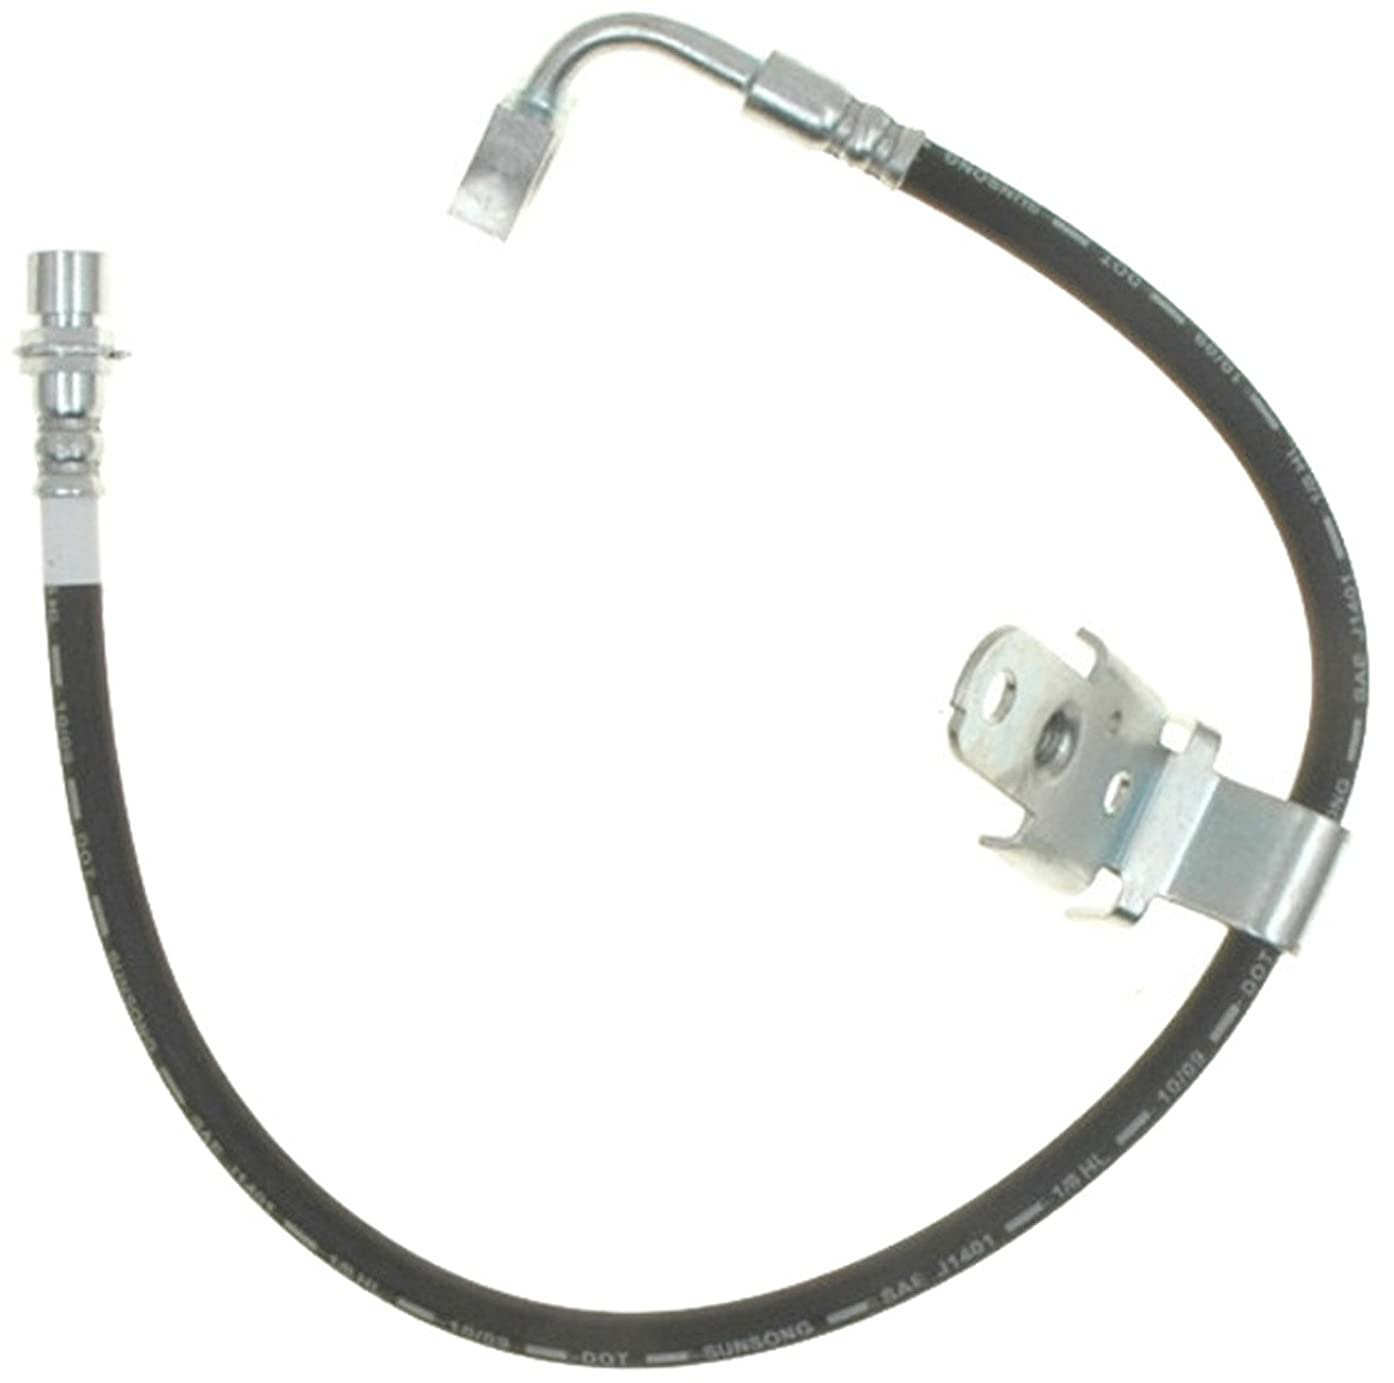 ACDelco 18J4282 Professional Front Driver Side Hydraulic Brake Hose Assembly